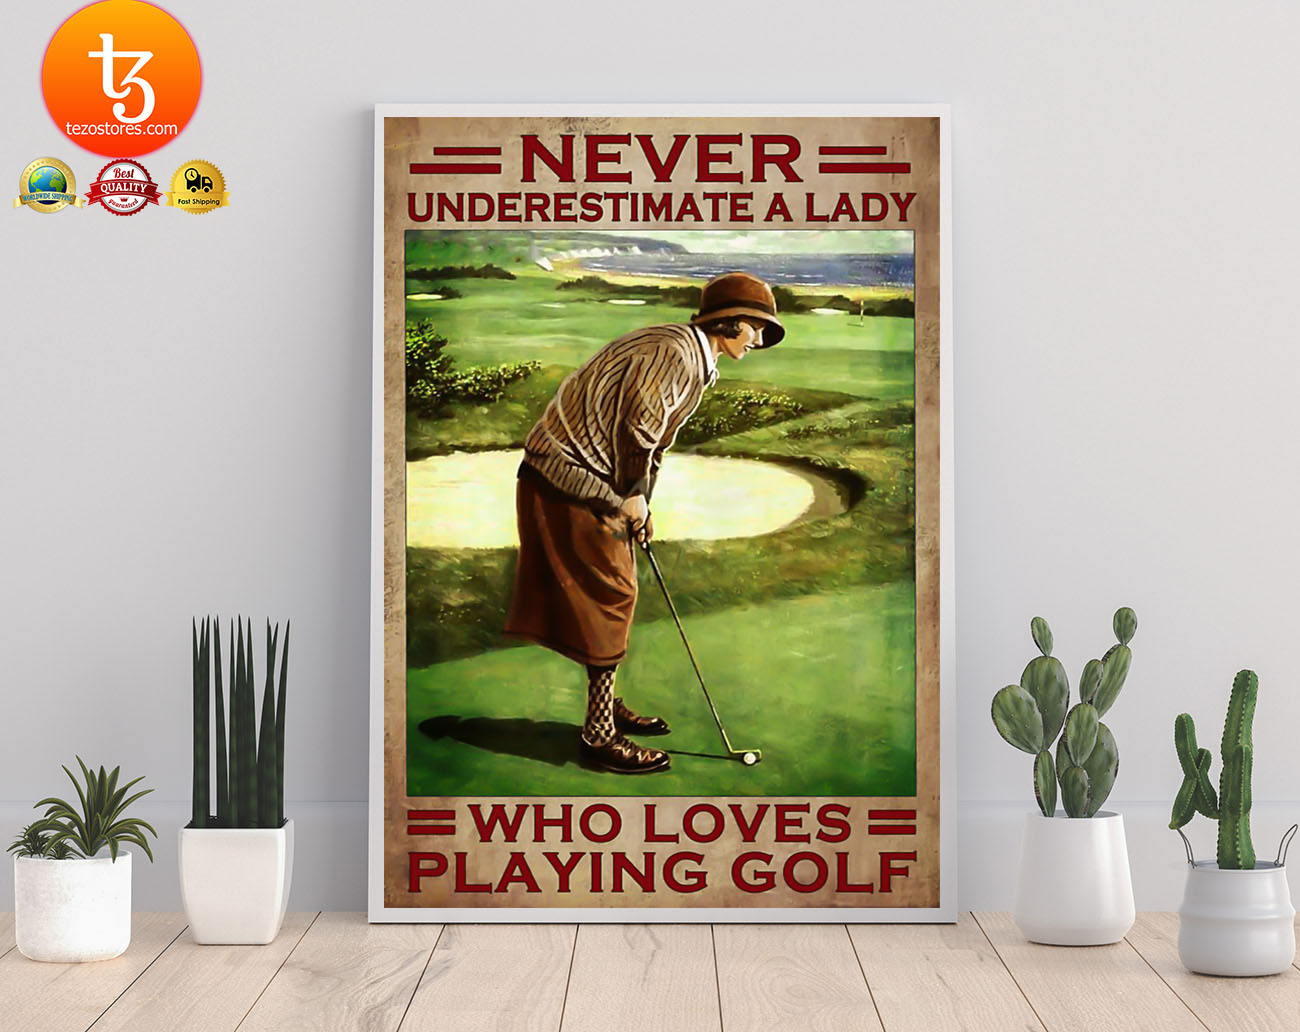 Never underestimate a lady who loves playing golf poster 21